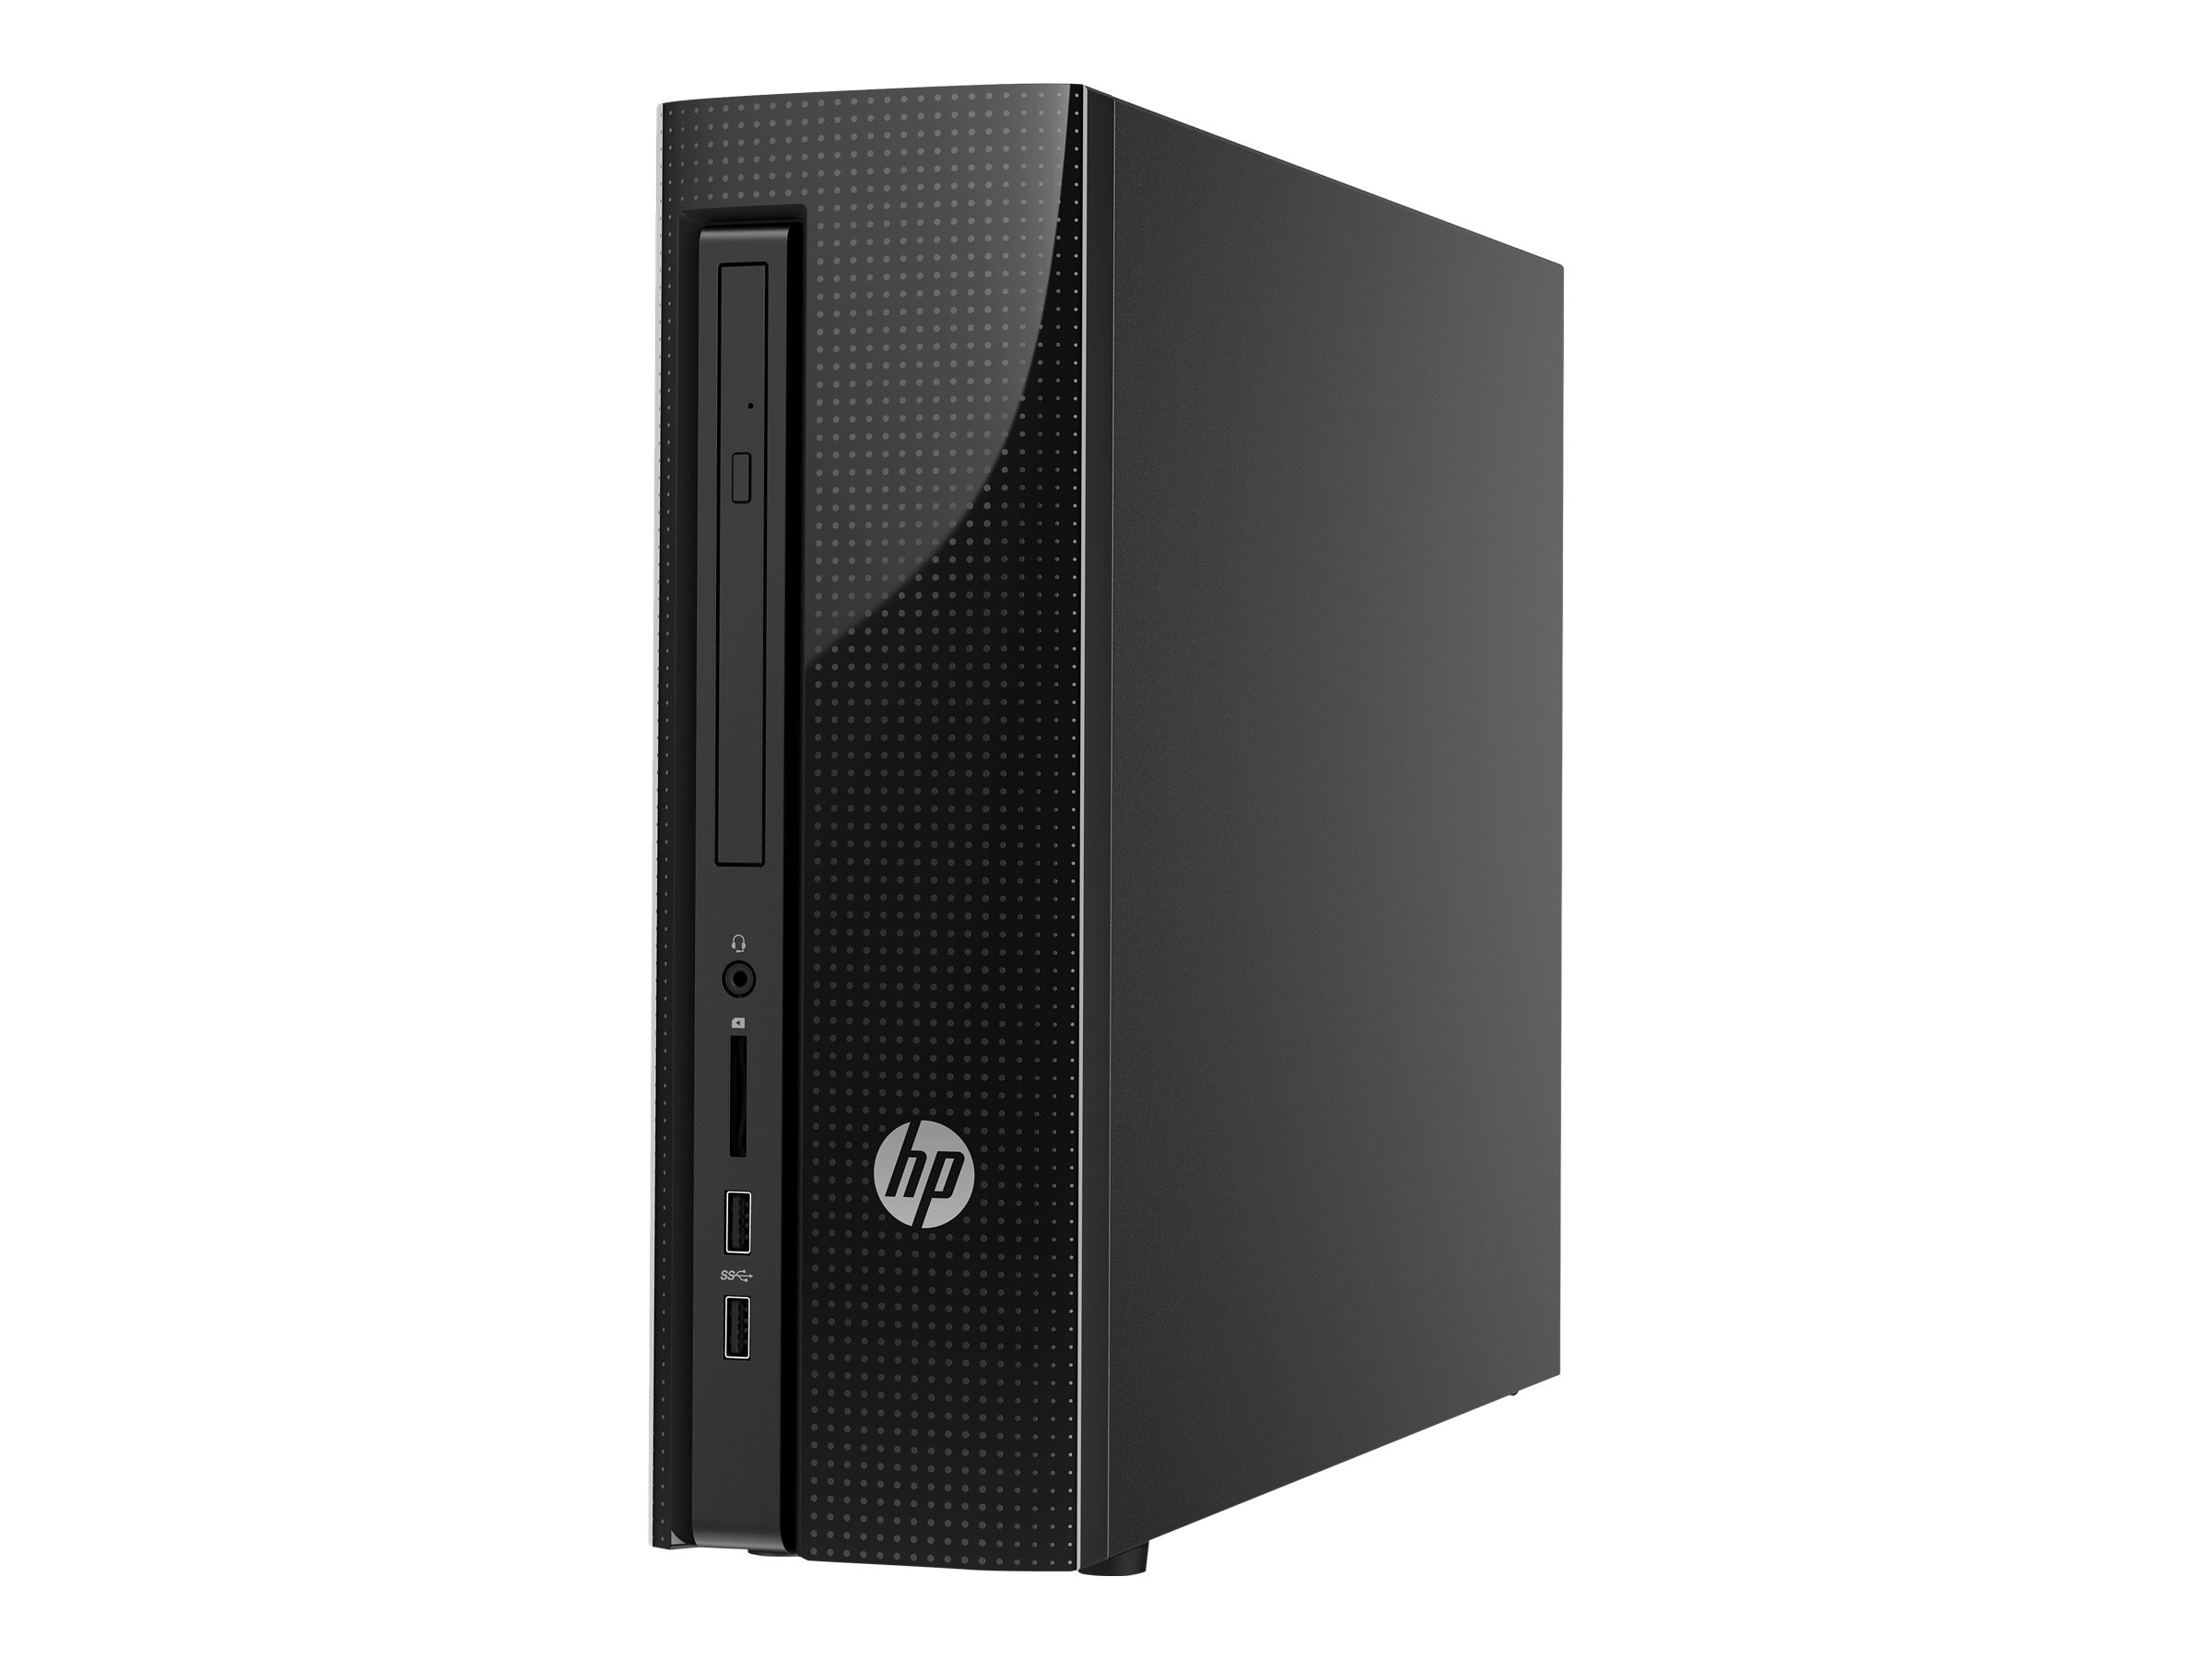 HP Slimline 450-151 Desktop PC